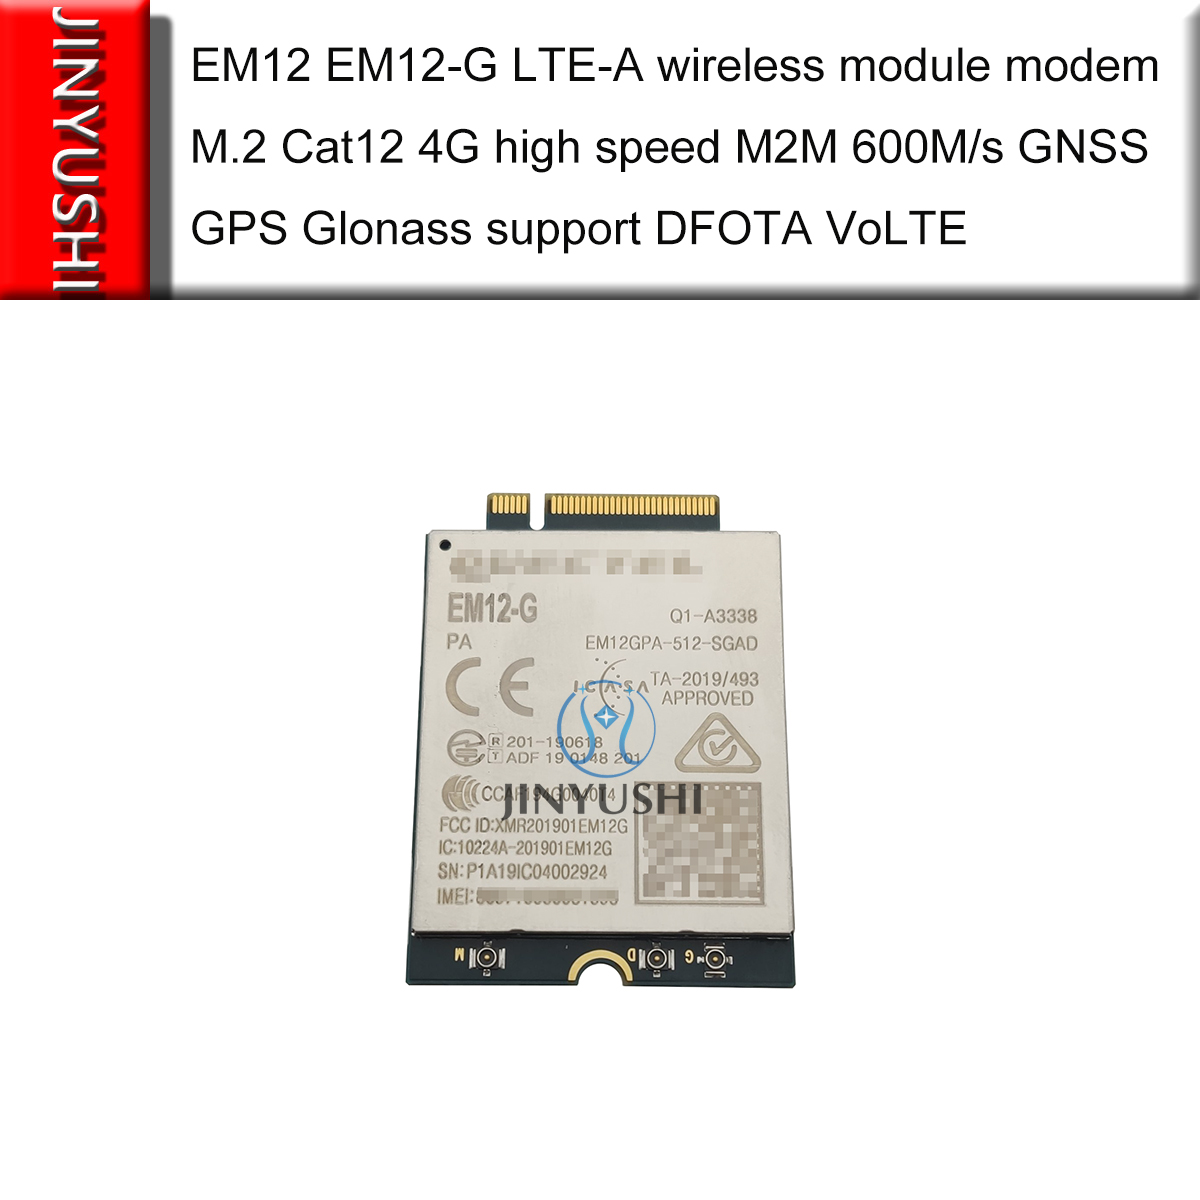 JINYUSHI No Fake EM12 EM12-G LTE-A Wireless Module Modem M.2 Cat12 4G High Speed M2M 600M/s GNSS GPS Glonass Support DFOTA VoLTE